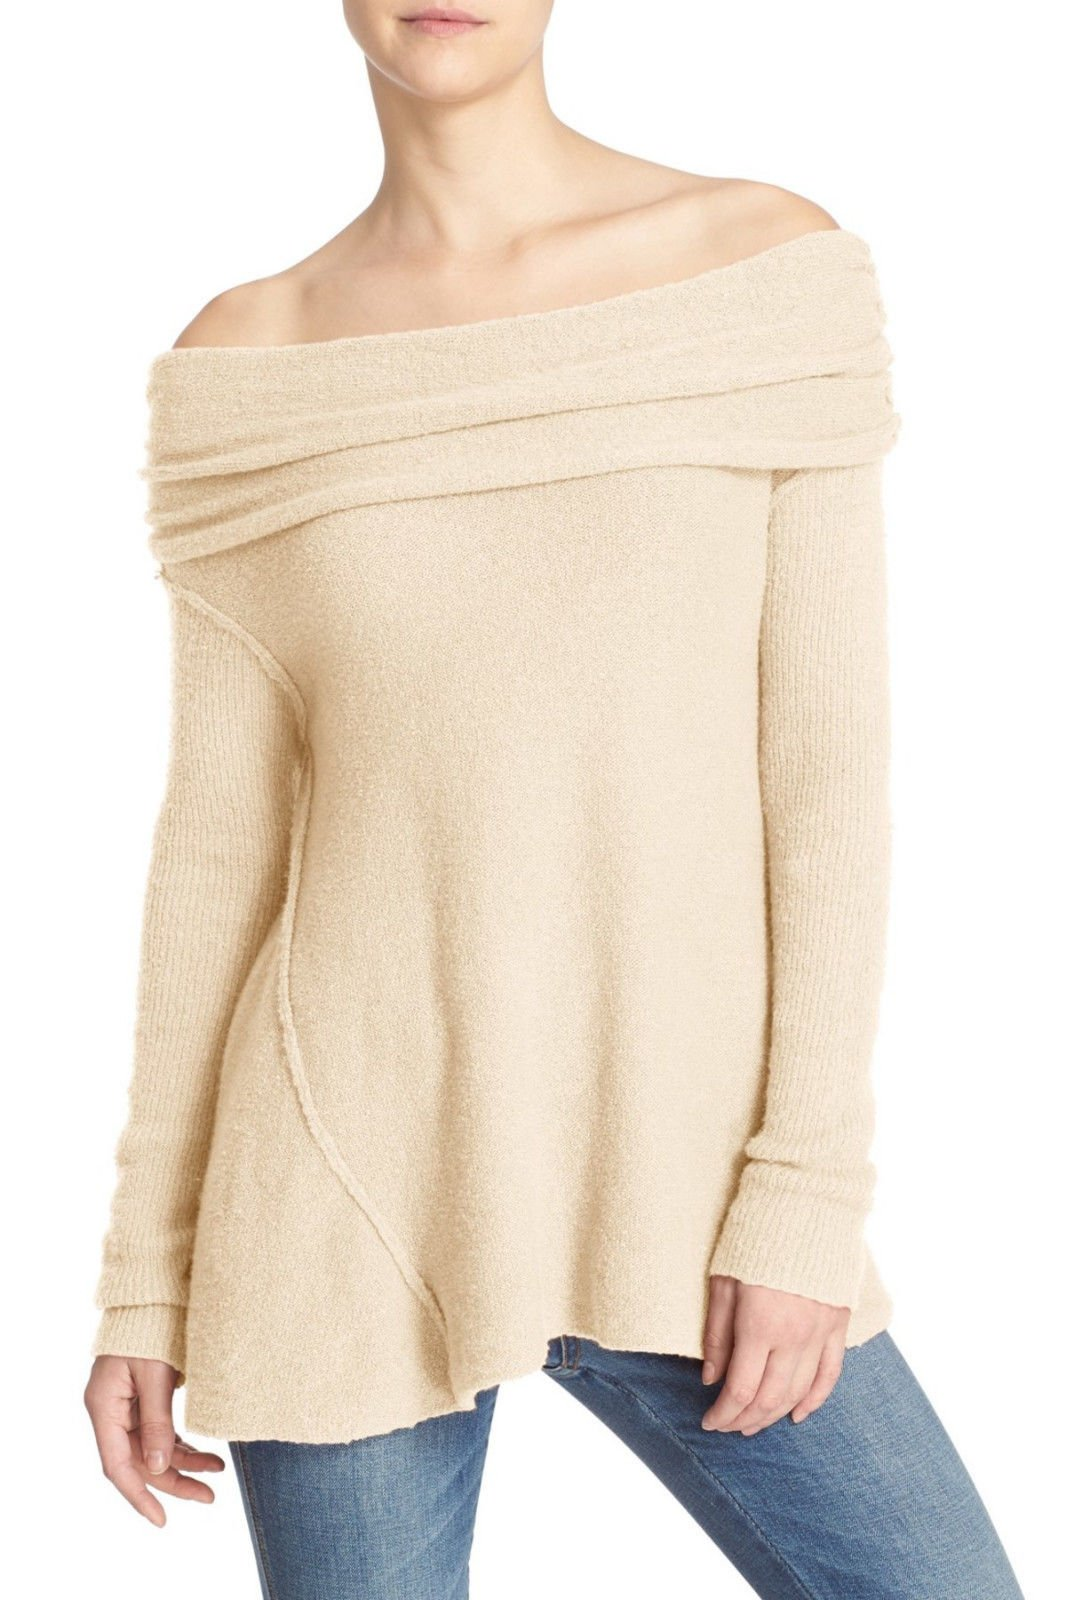 Free People Womens Boucle Cowl Neck Pullover Sweater Beige M